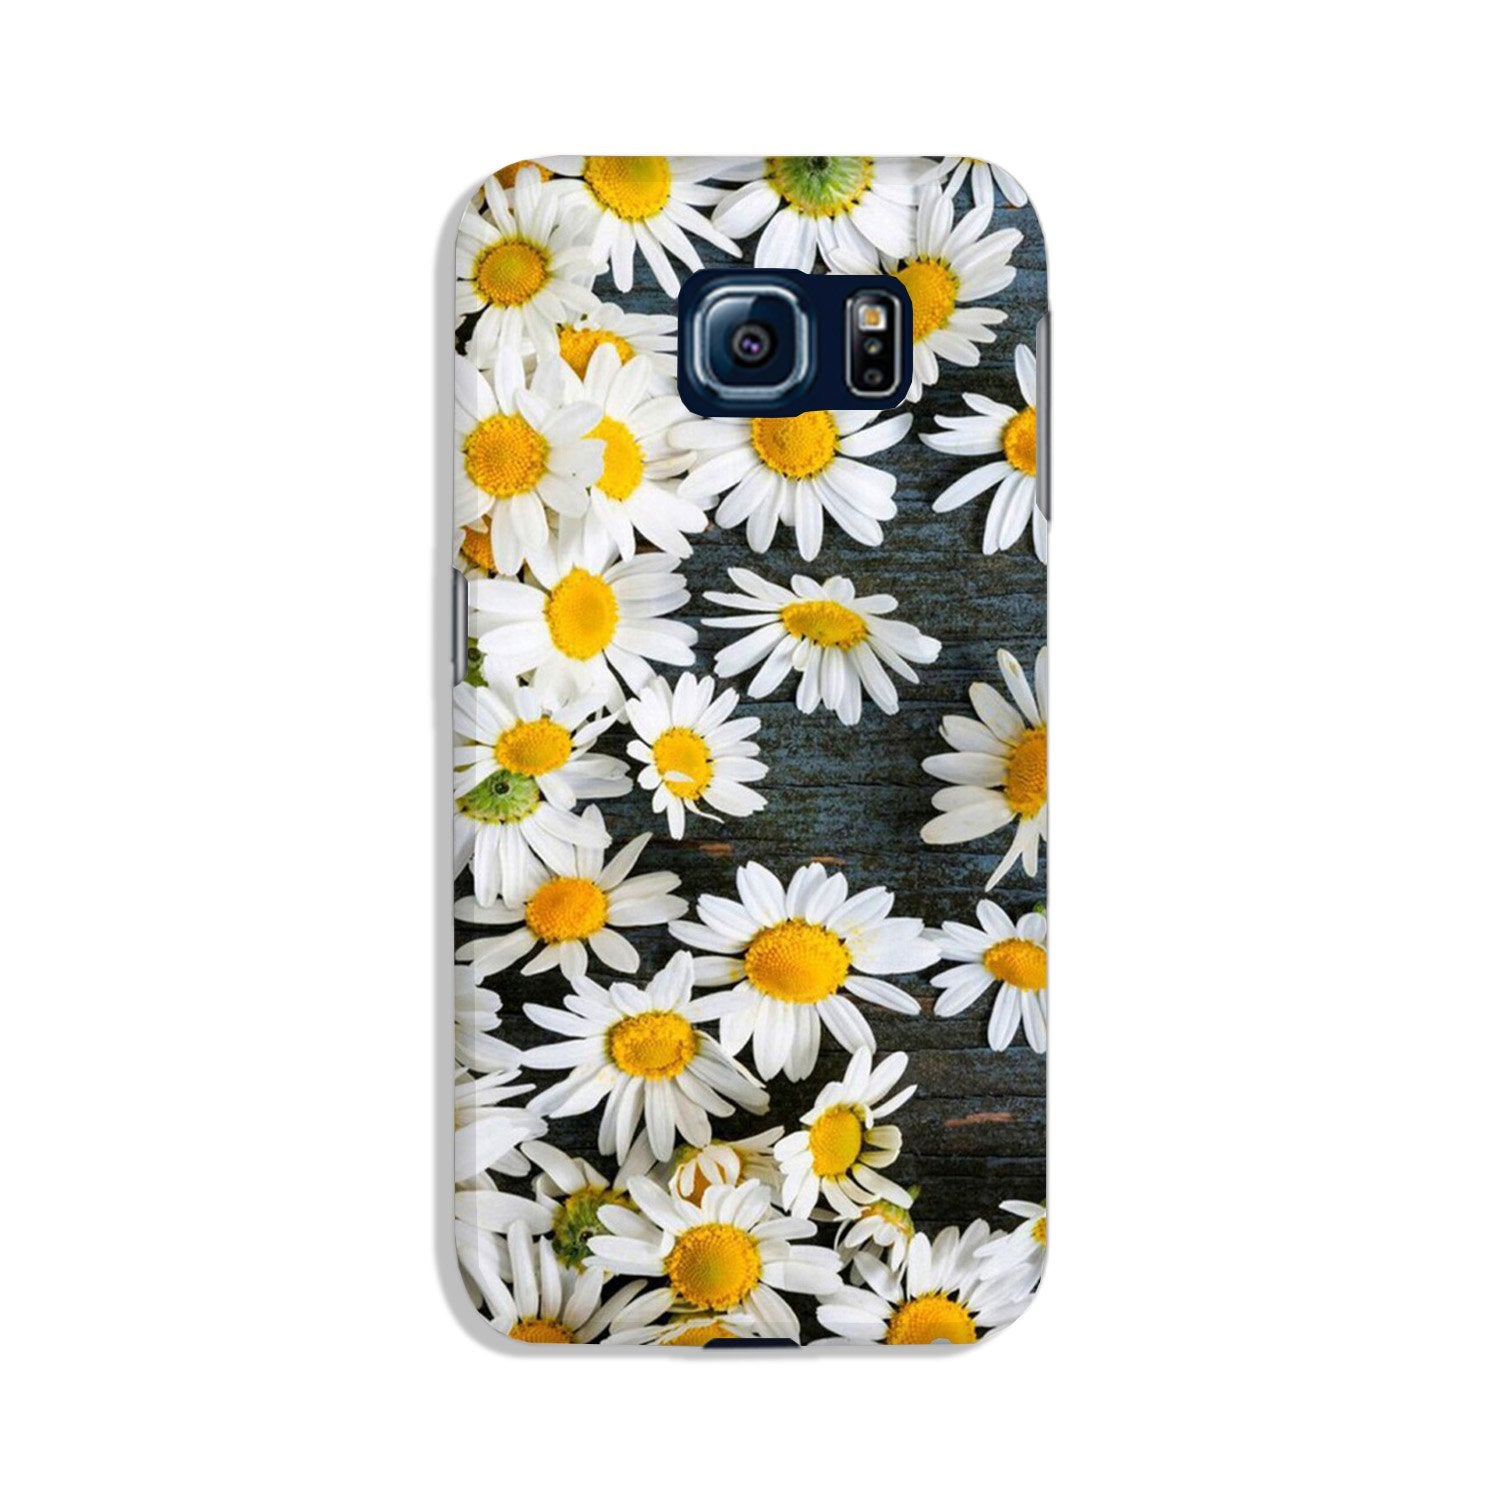 White flowers2 Case for Galaxy S6